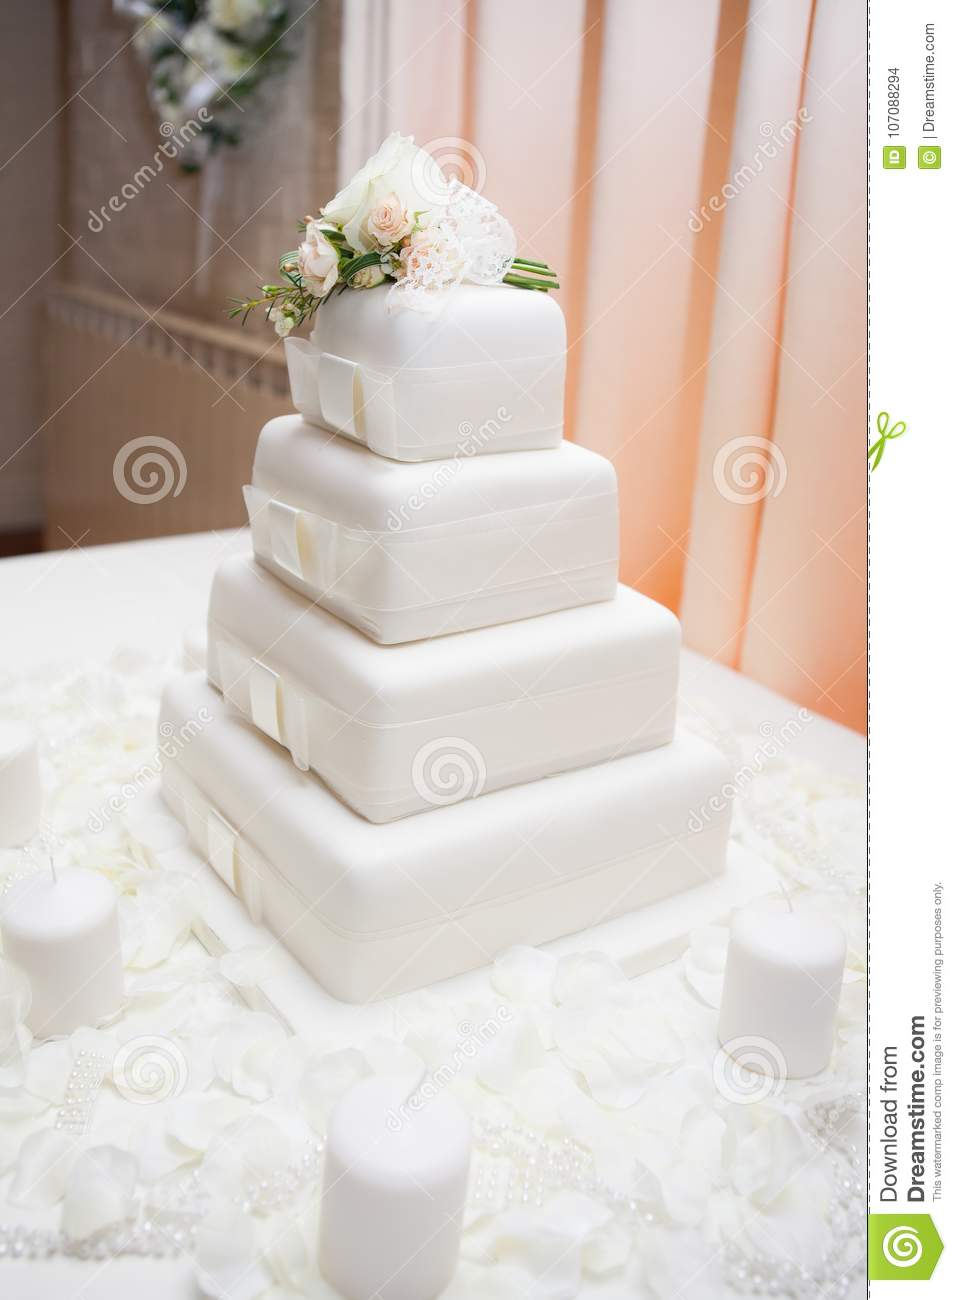 White Wedding Cake With Flowers Decorating The Top And Candles Stock